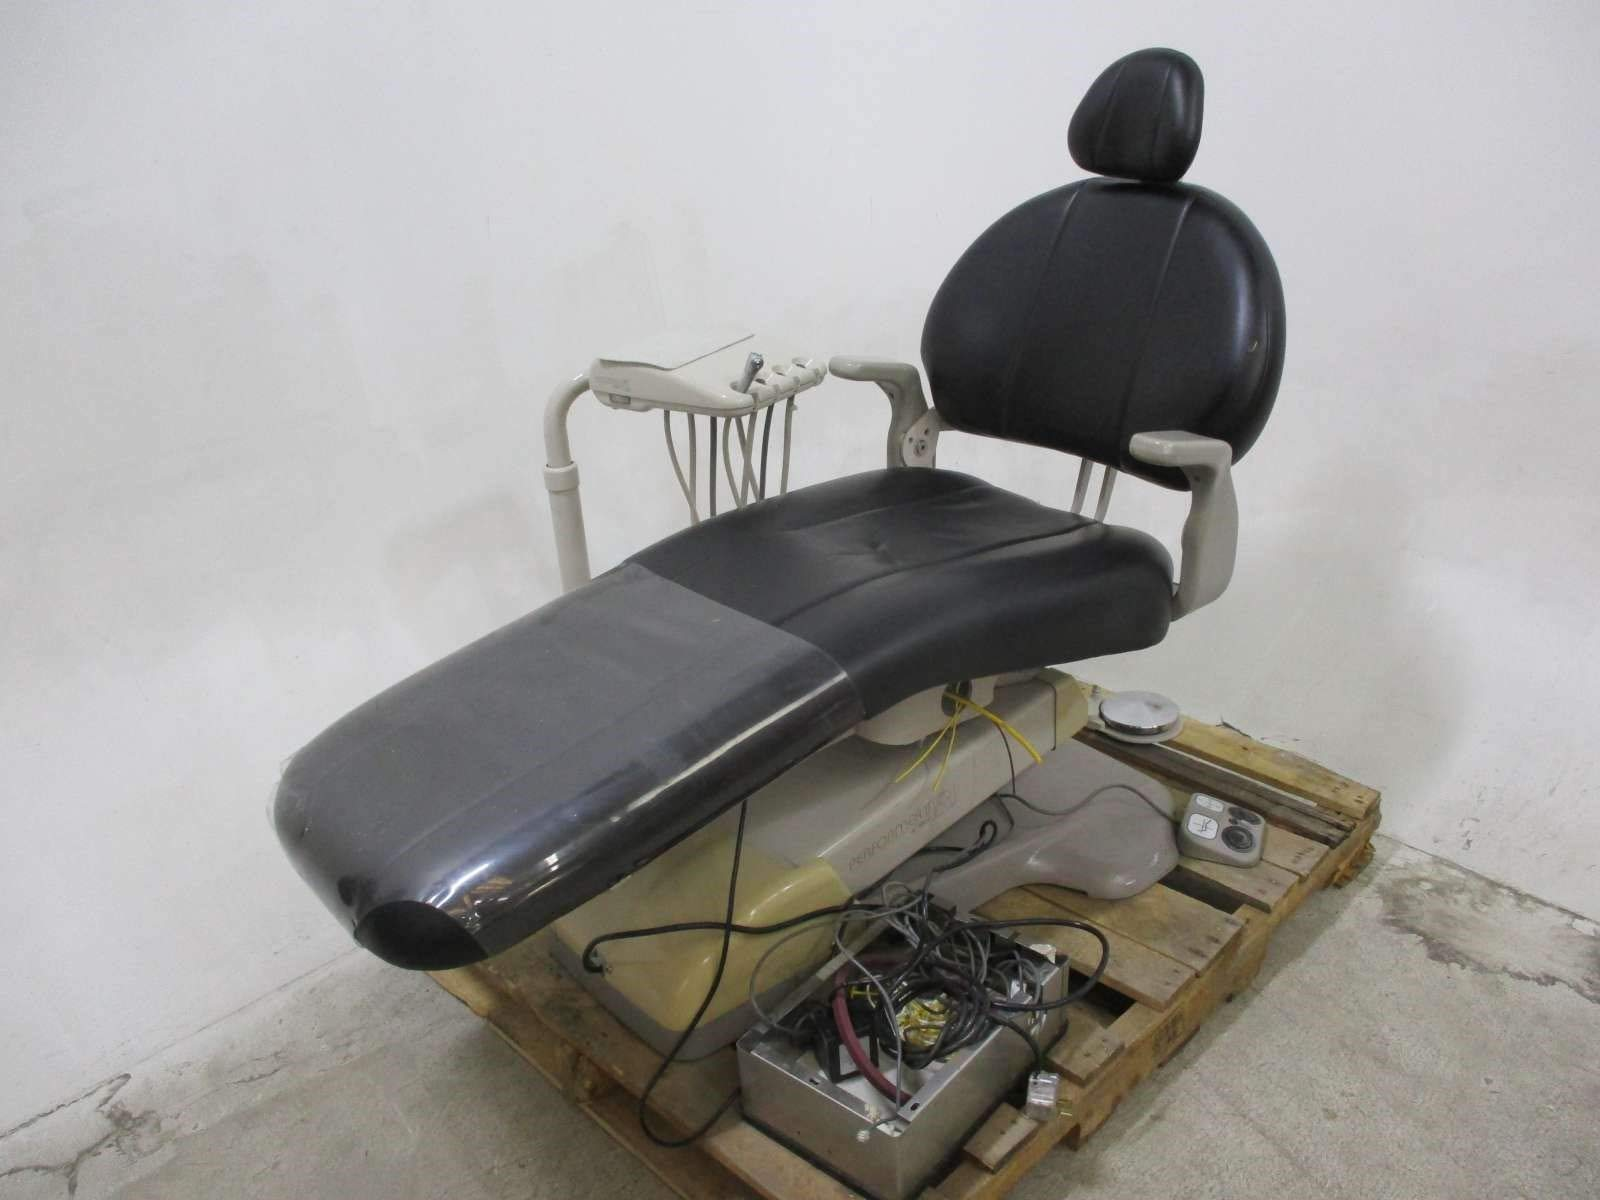 Miraculous Adec Dental Chair Best Chairs Reviews Ratings Pricing Squirreltailoven Fun Painted Chair Ideas Images Squirreltailovenorg